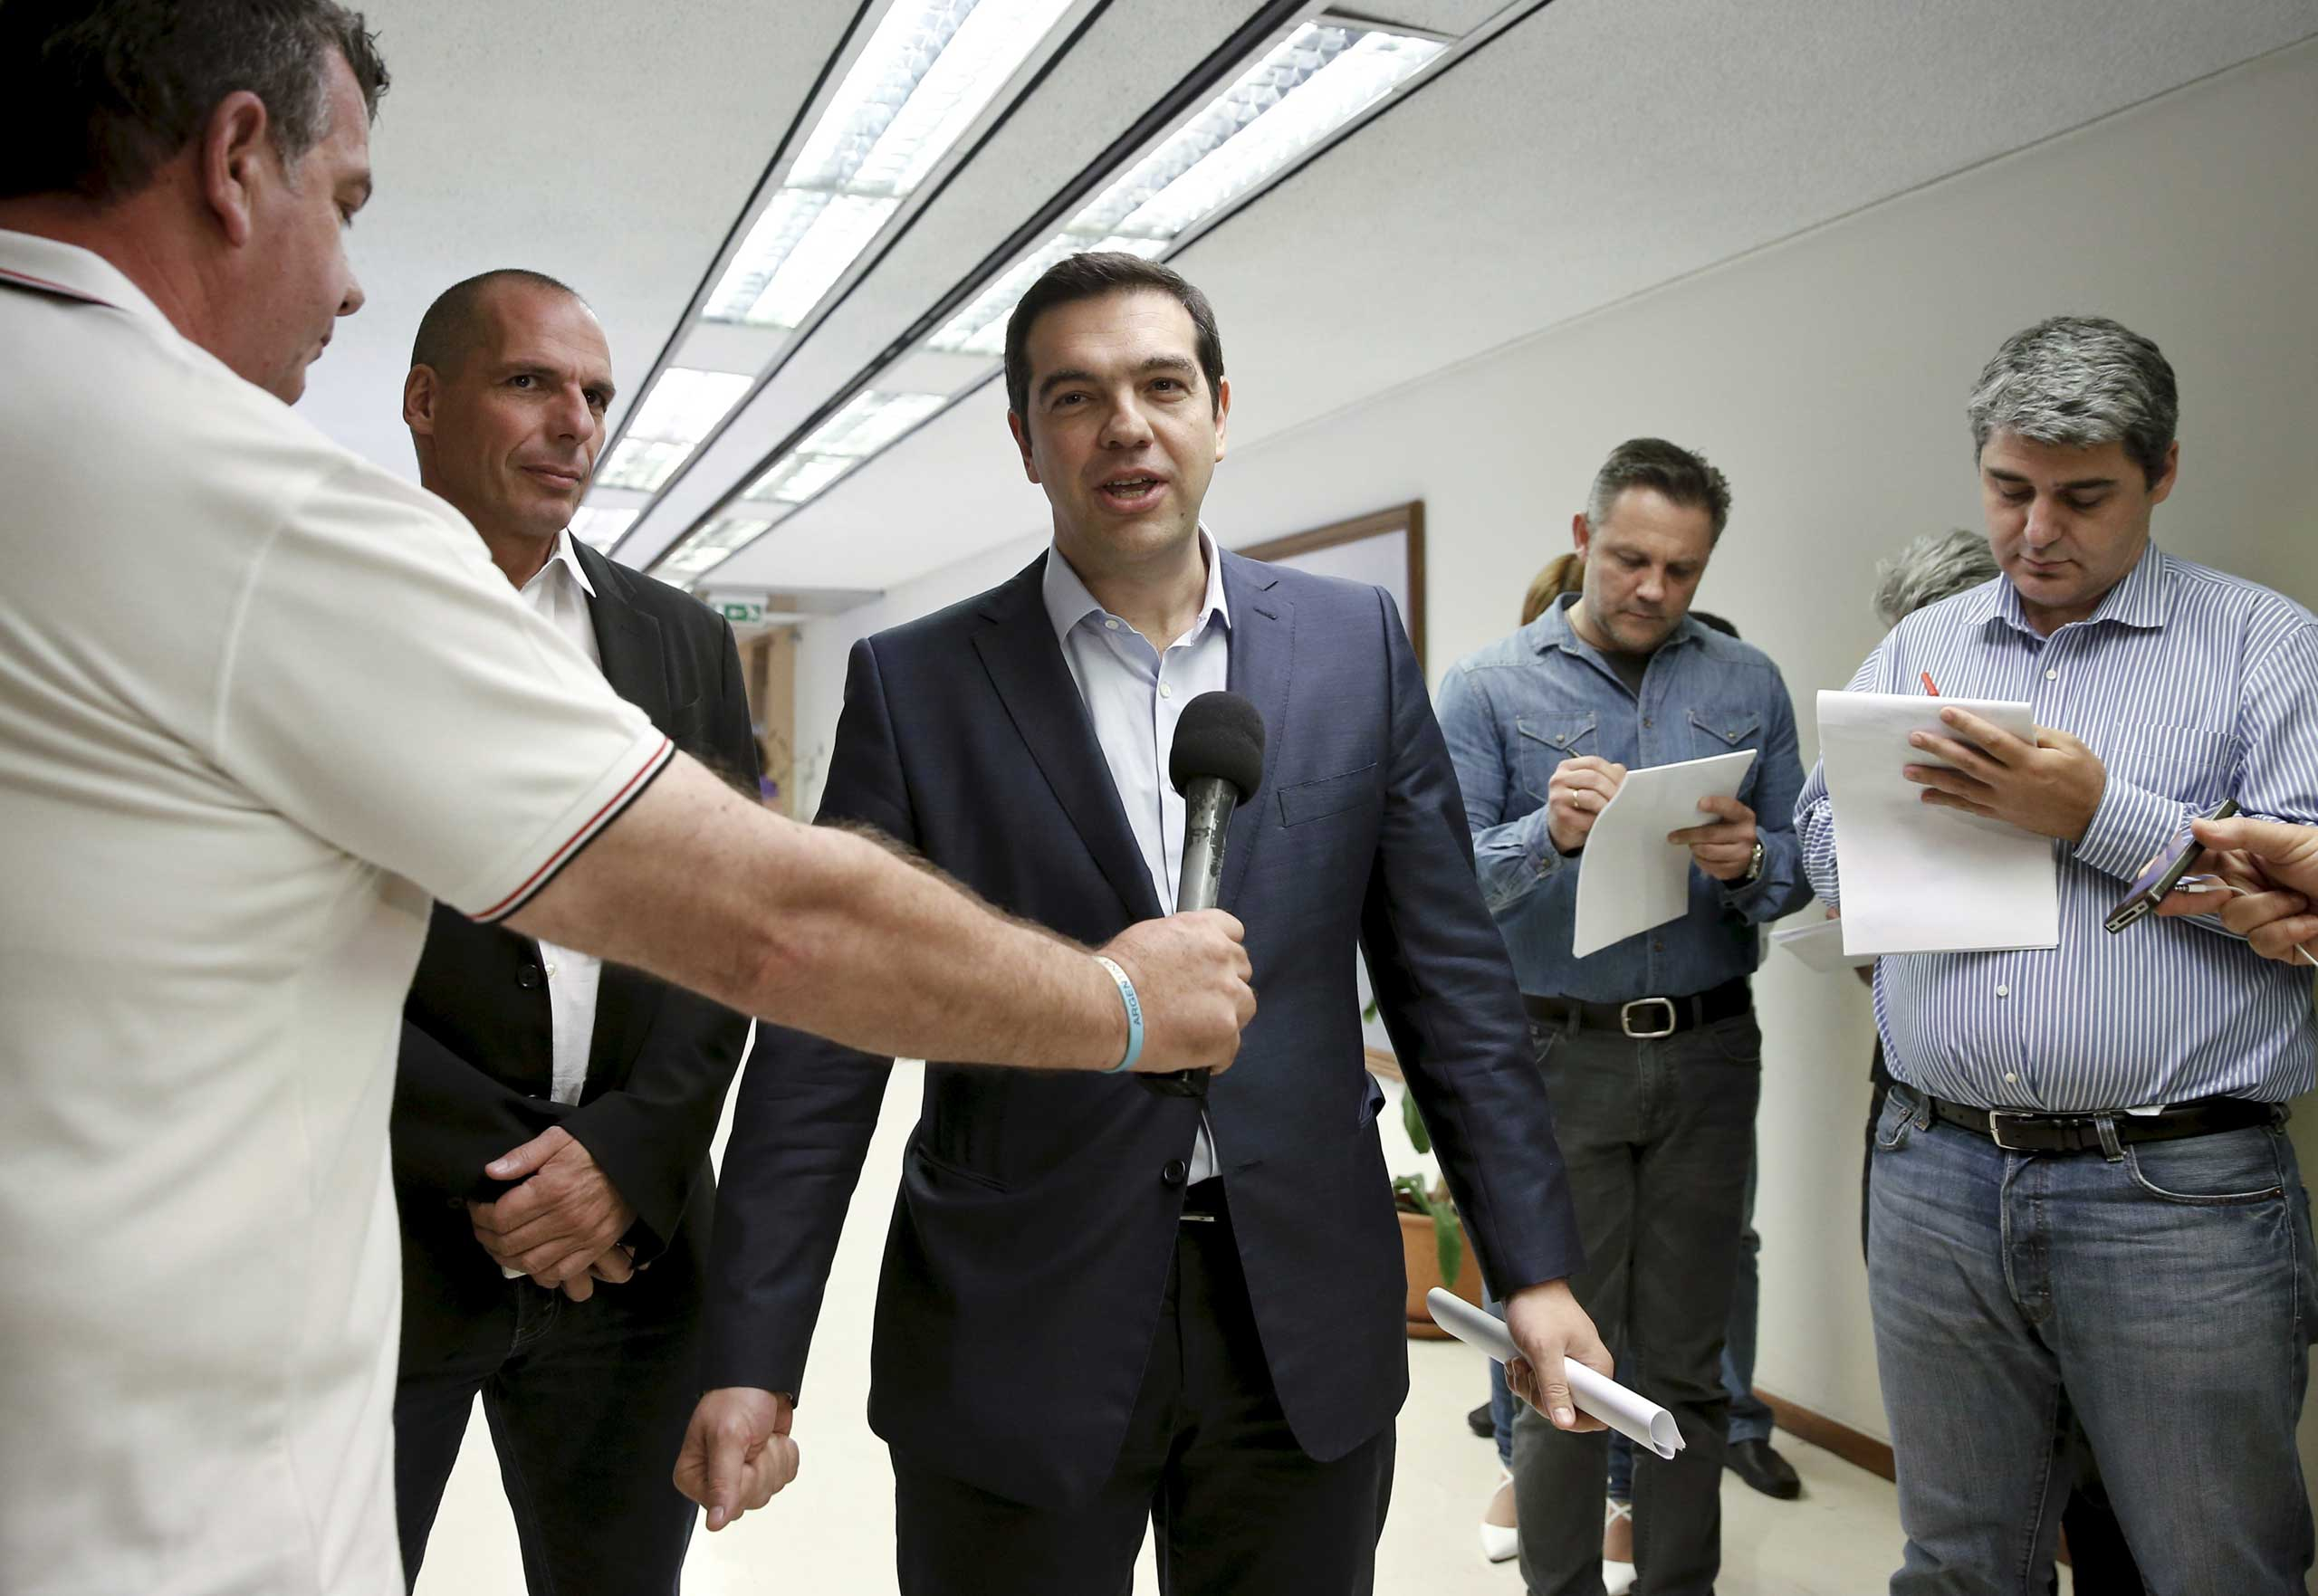 Greek Prime Minister Alexis Tsipras (C) makes statements to the media as Finance Minister Yanis Varoufakis (2nd L) looks on after a meeting at the ministry in Athens May 27, 2015.